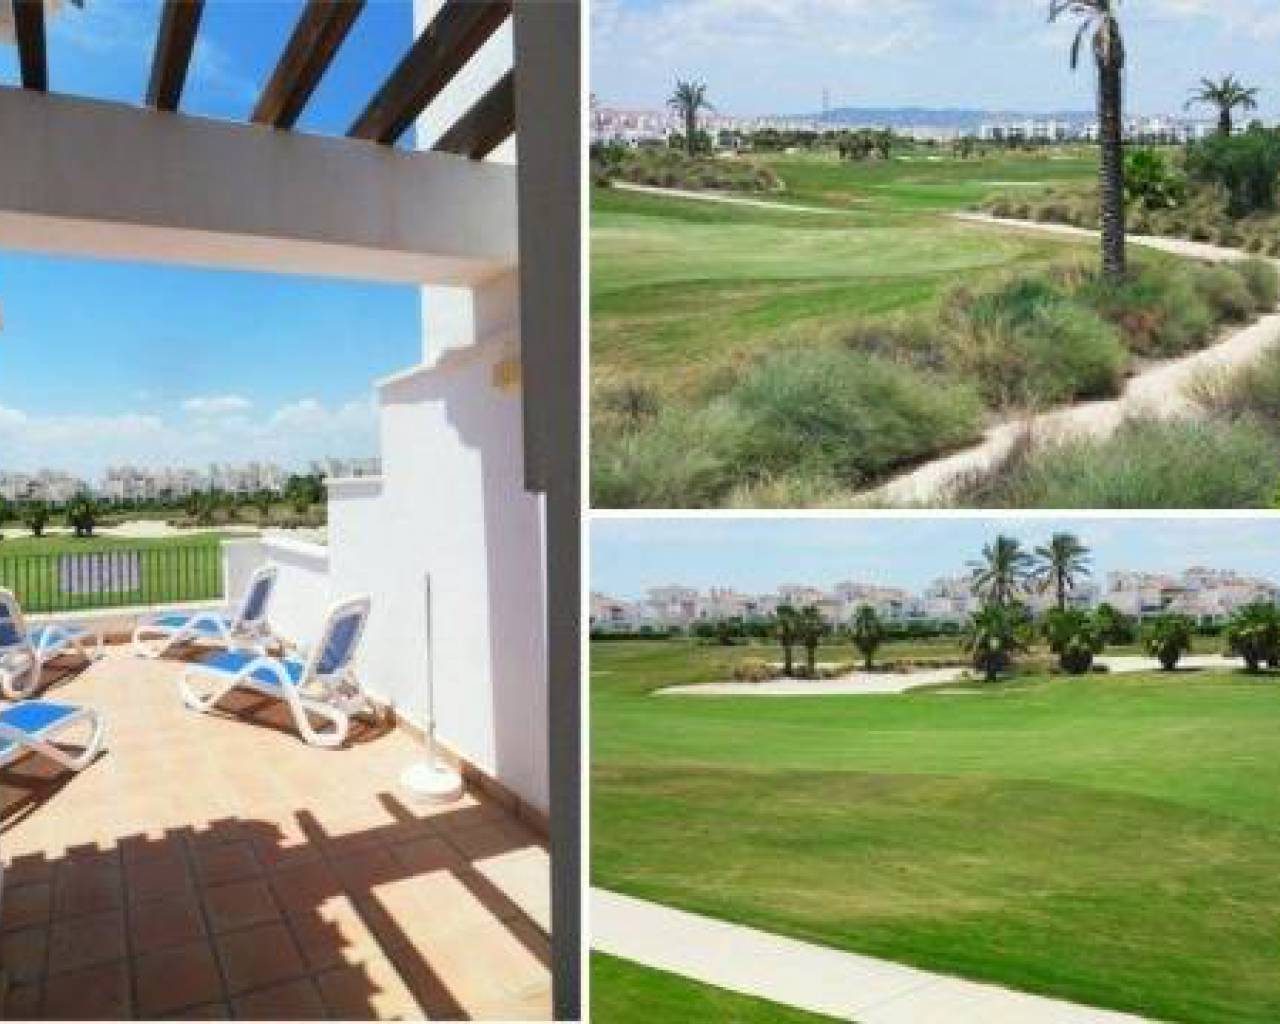 Til Salgs - Rekkehus - La Torre Golf Resort - La Torre Golf